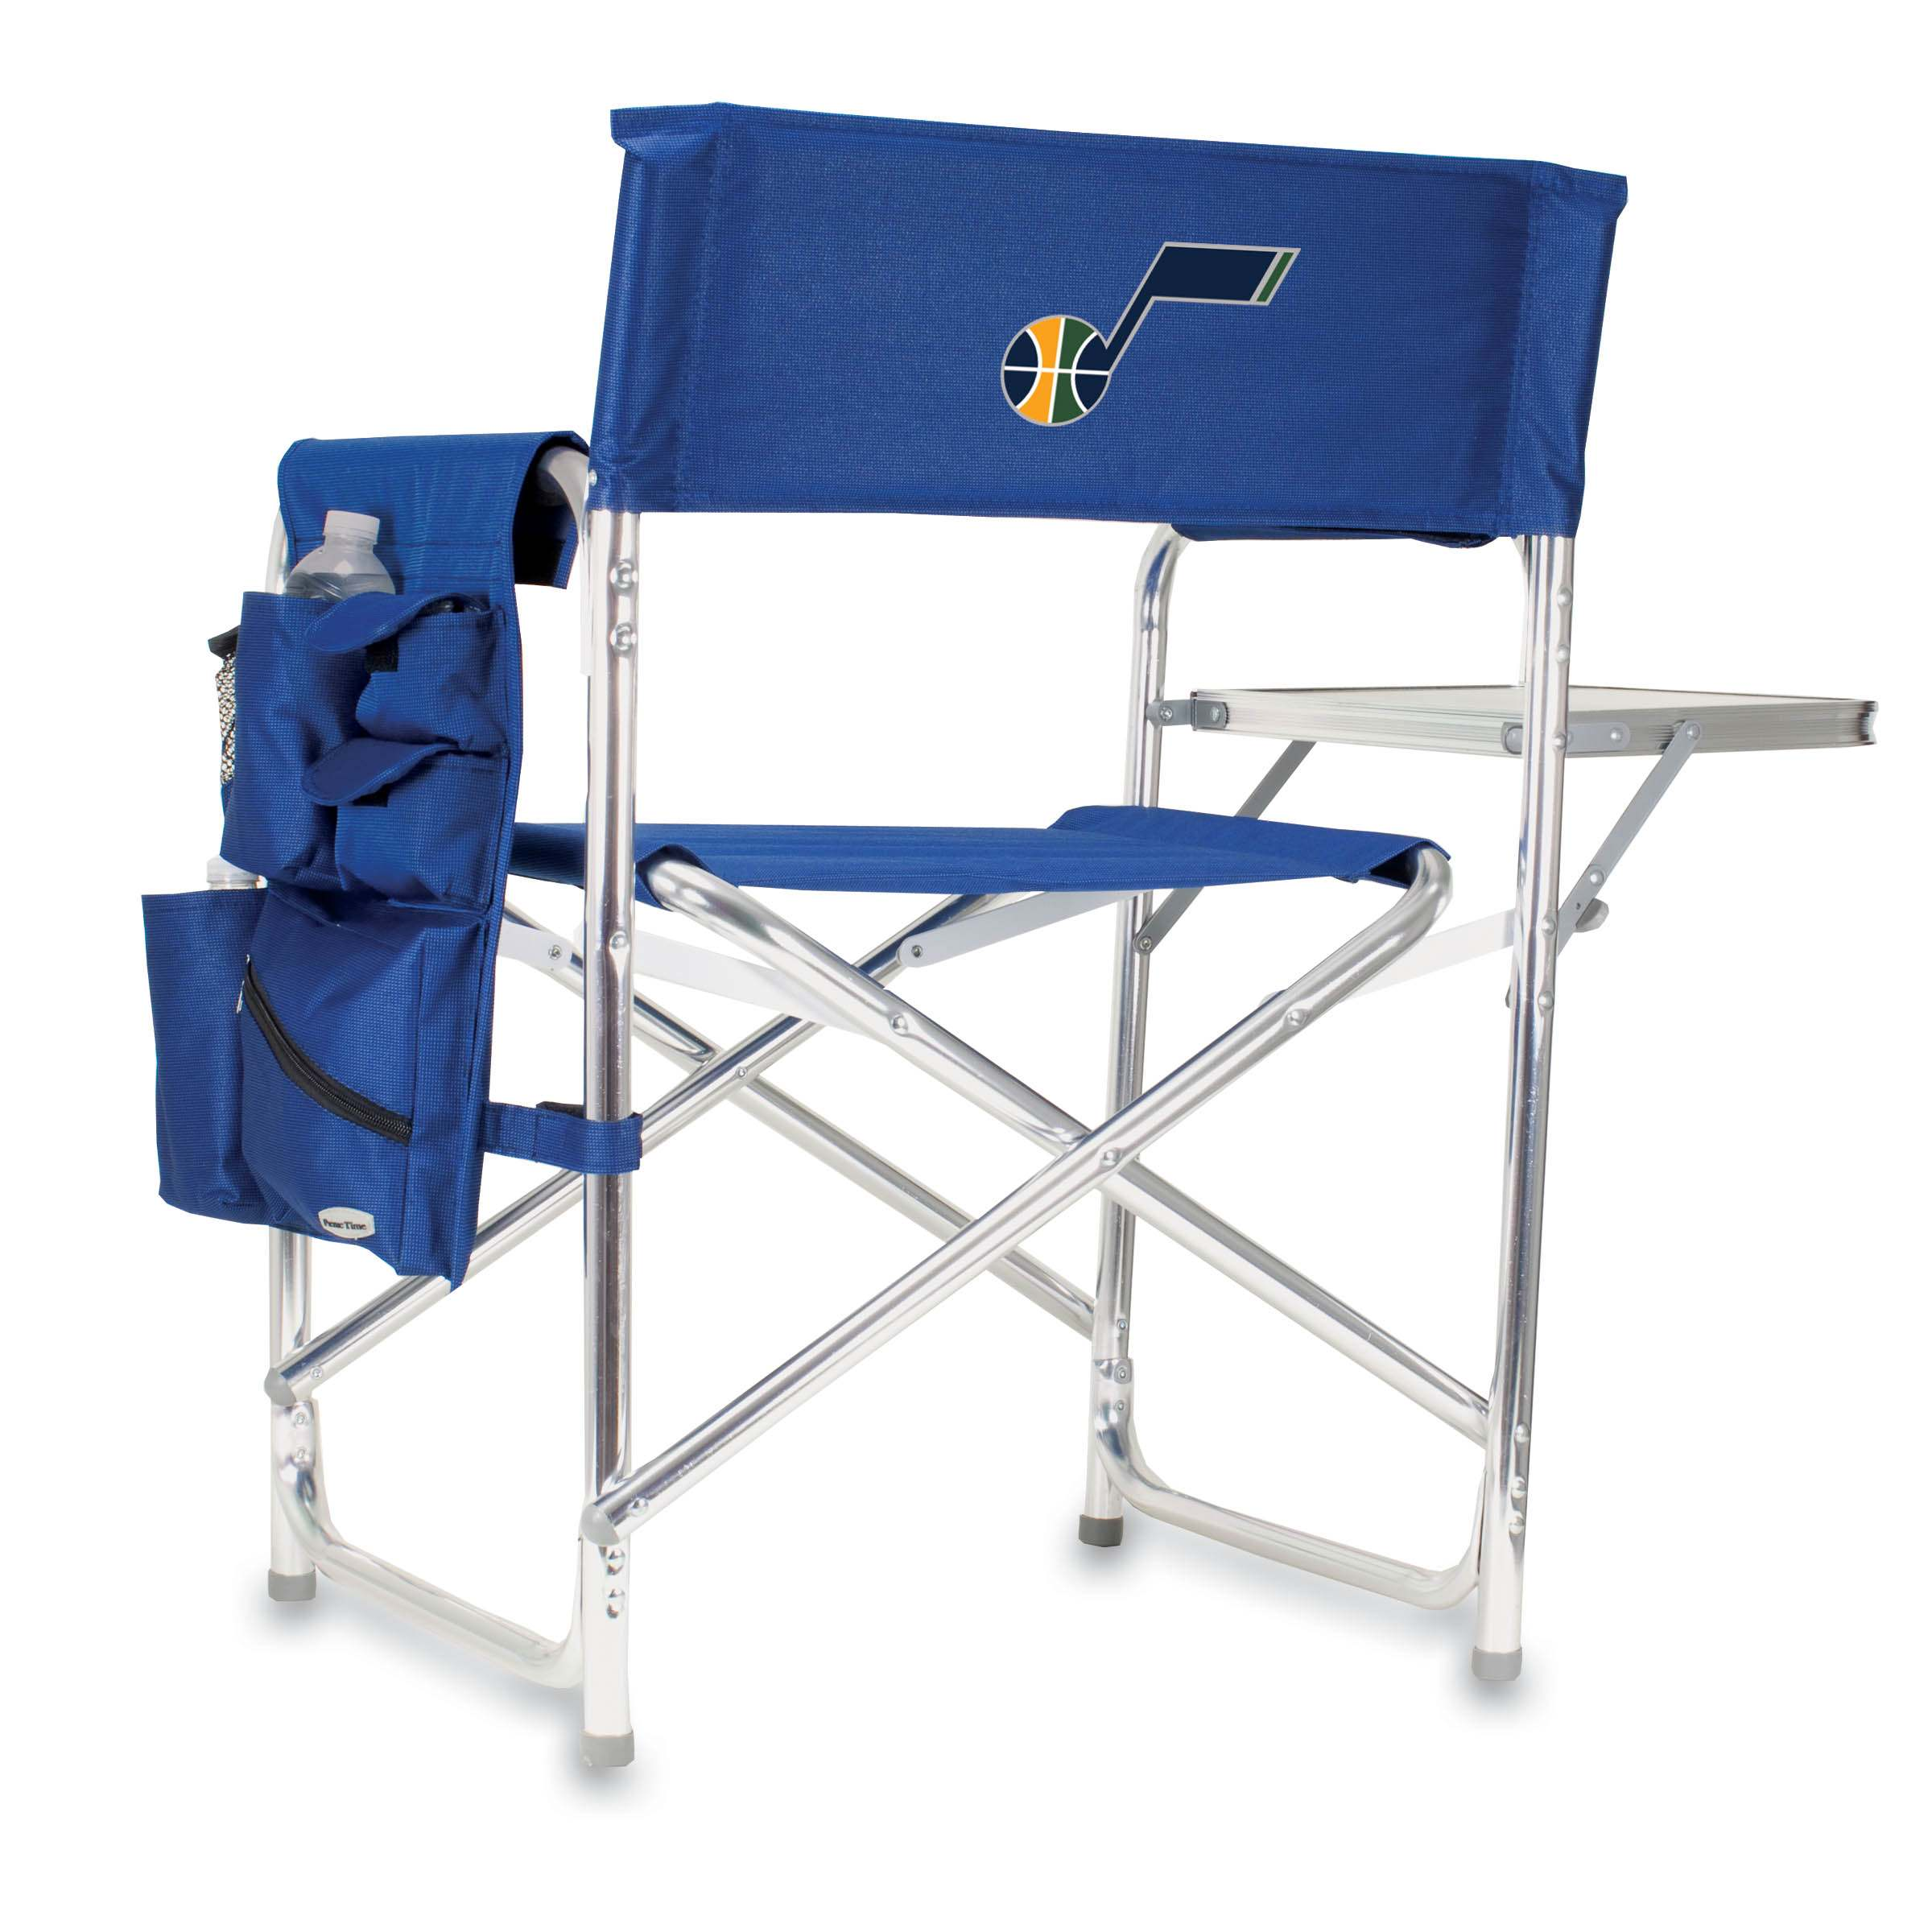 Picnic Time Nba Sports Chair Utah Jazz